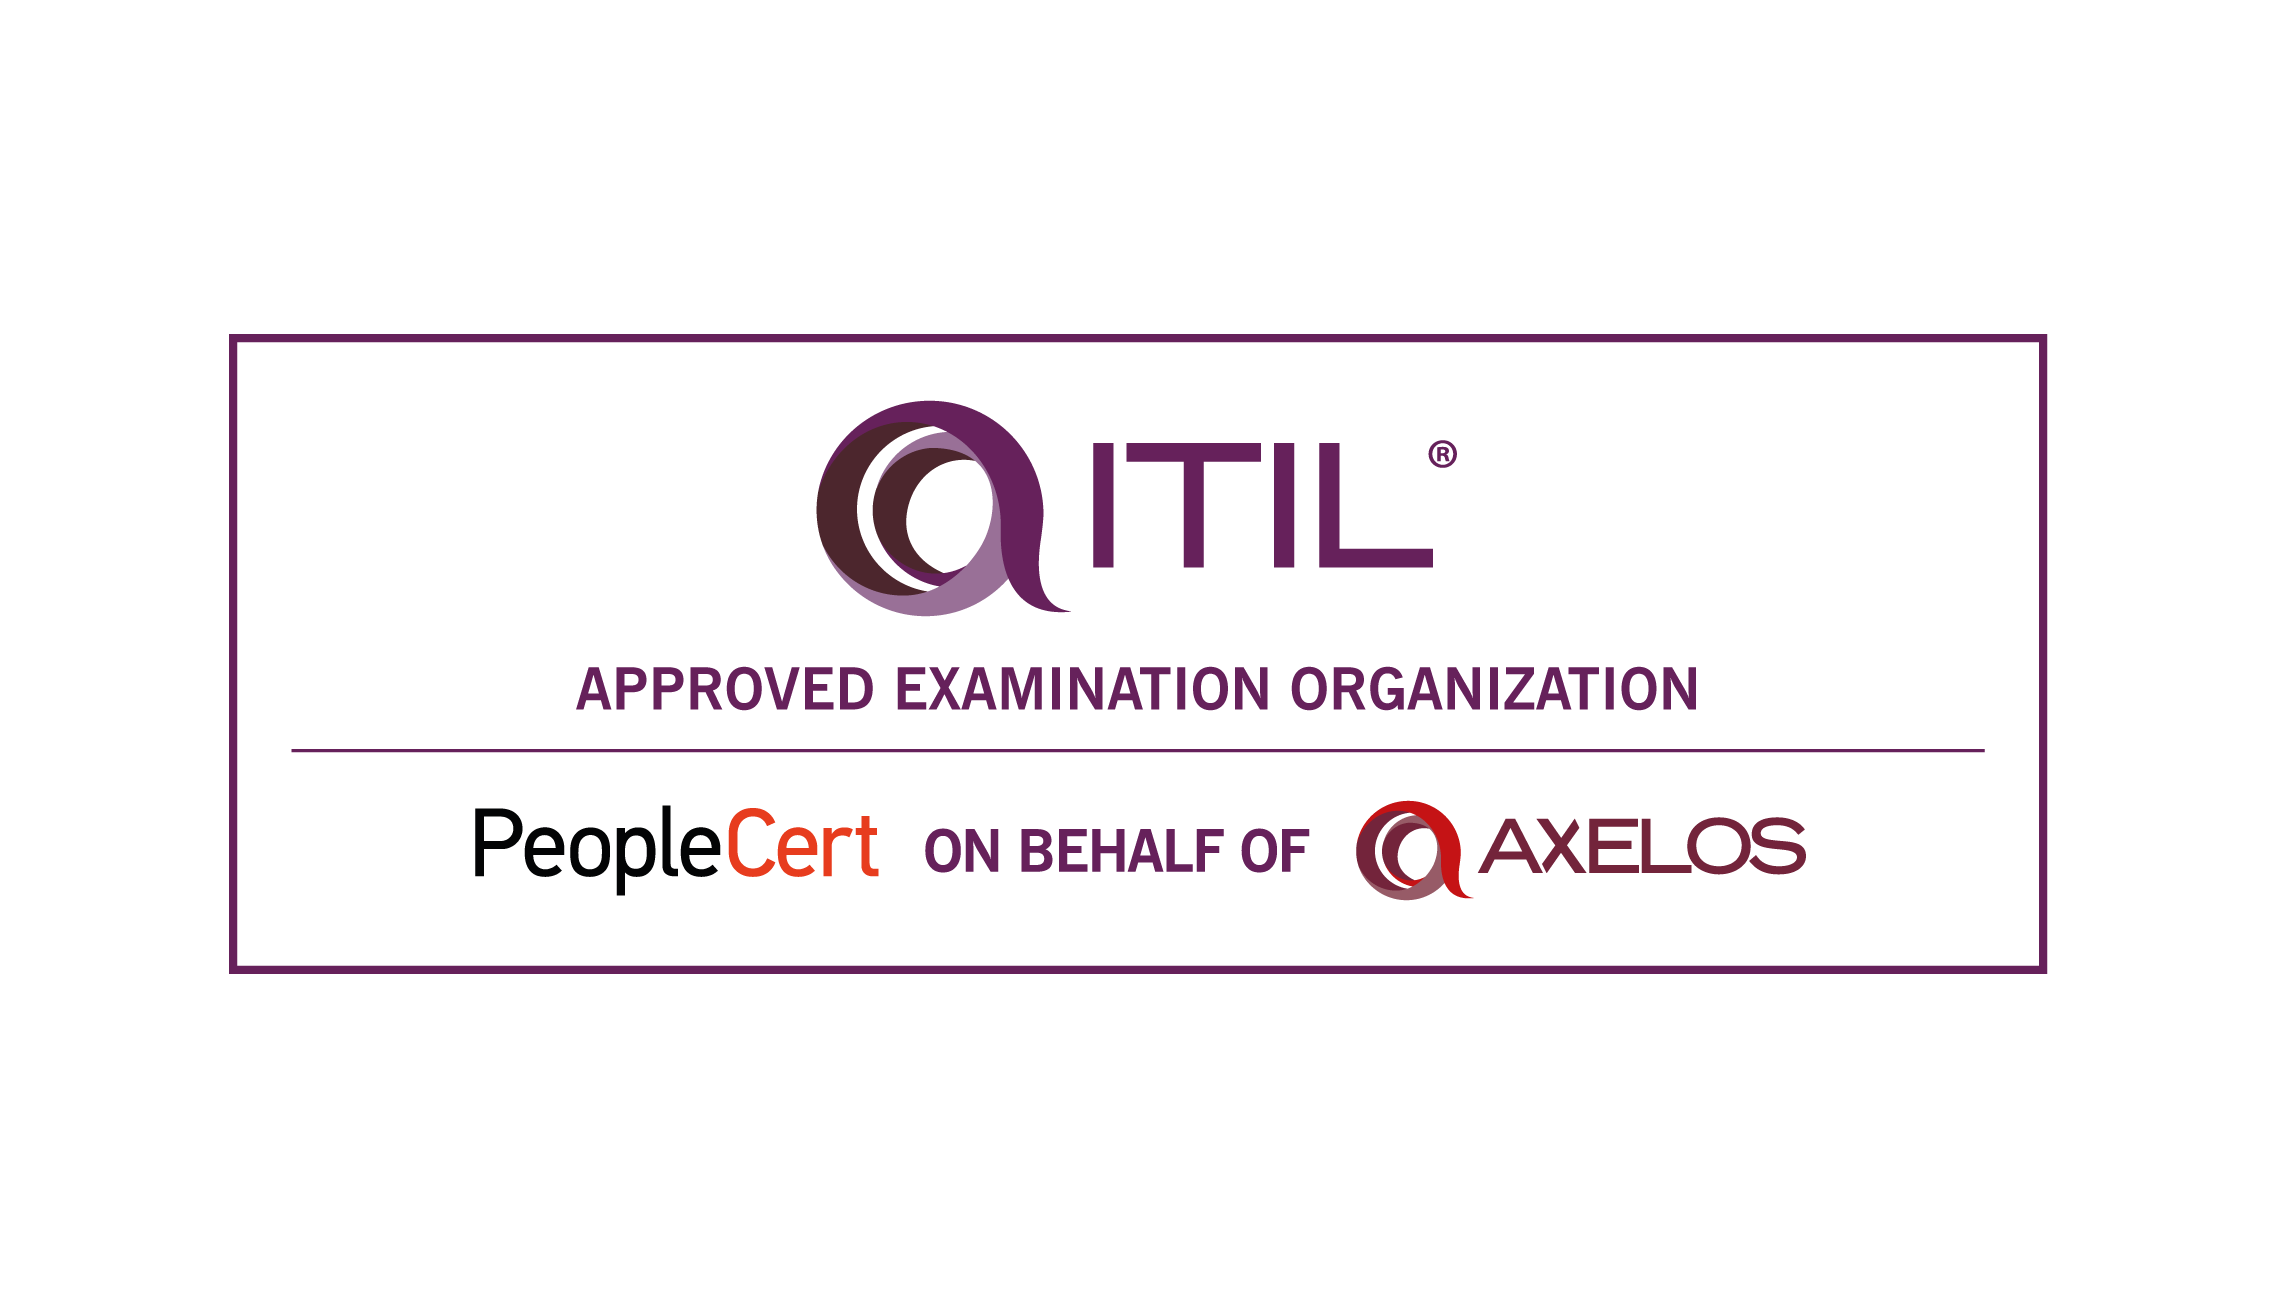 ITIL Certification and Training from New Horizons Columbus